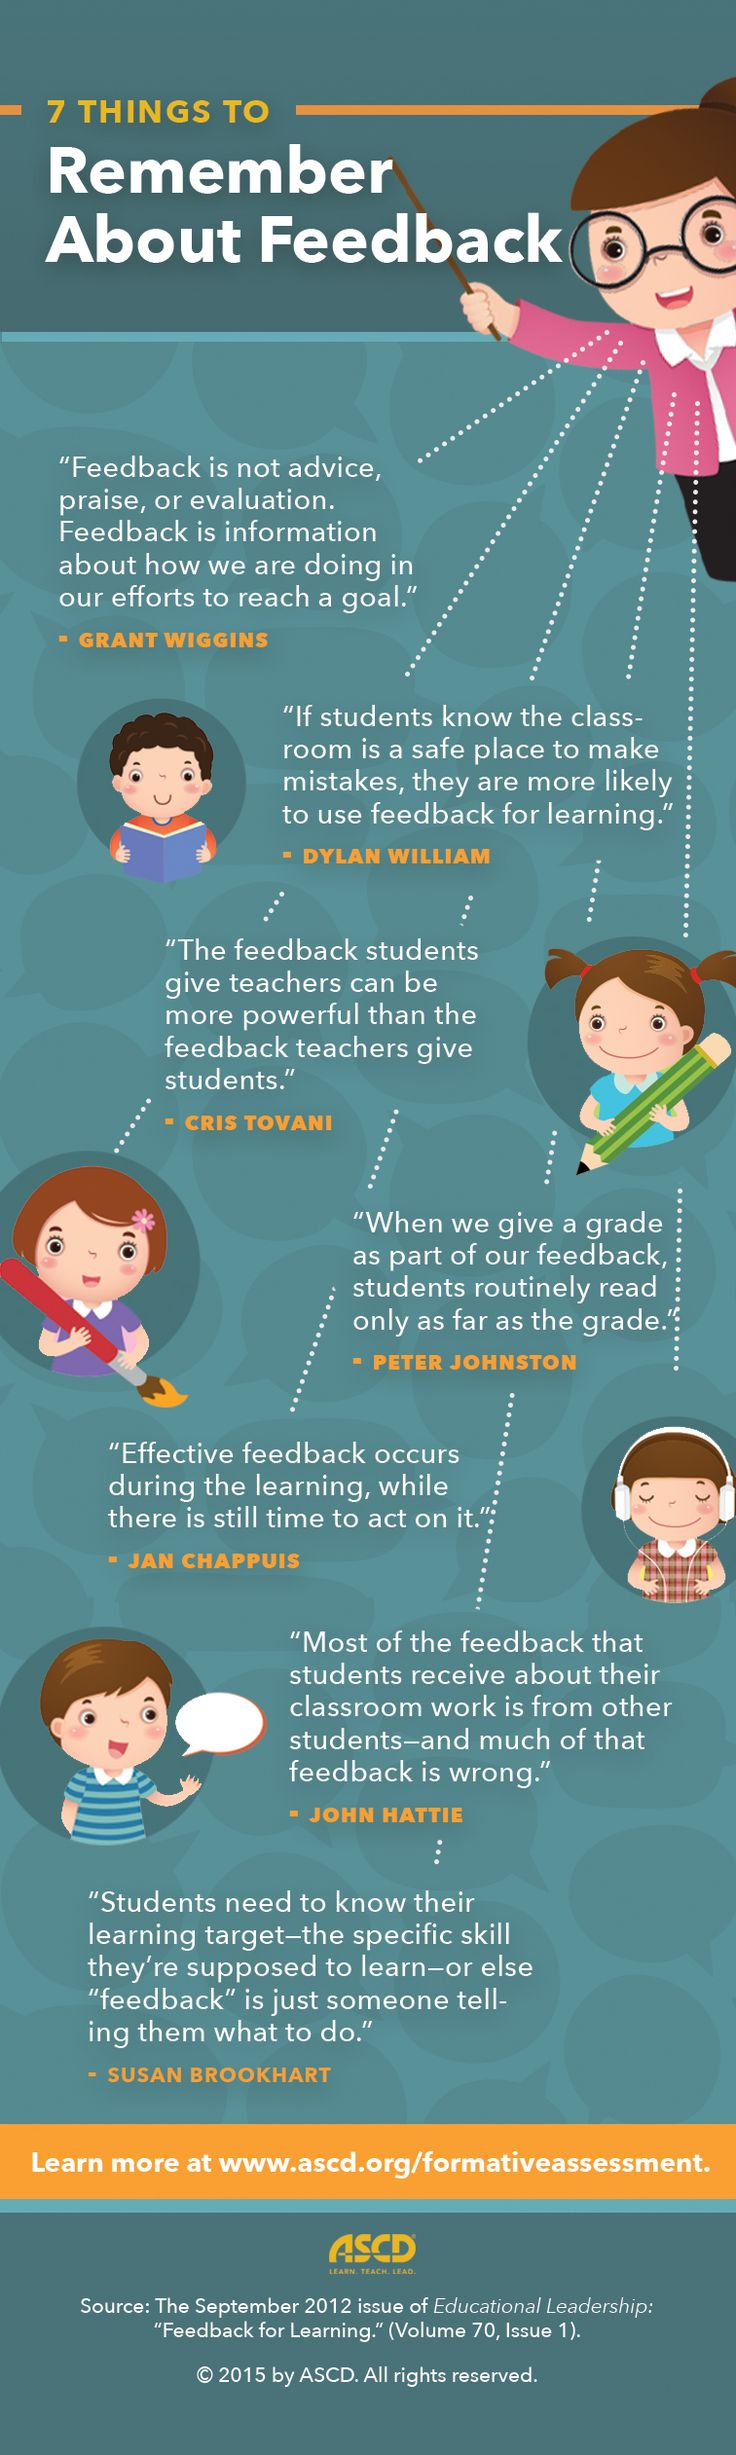 7 Things to Remember about Feedback!